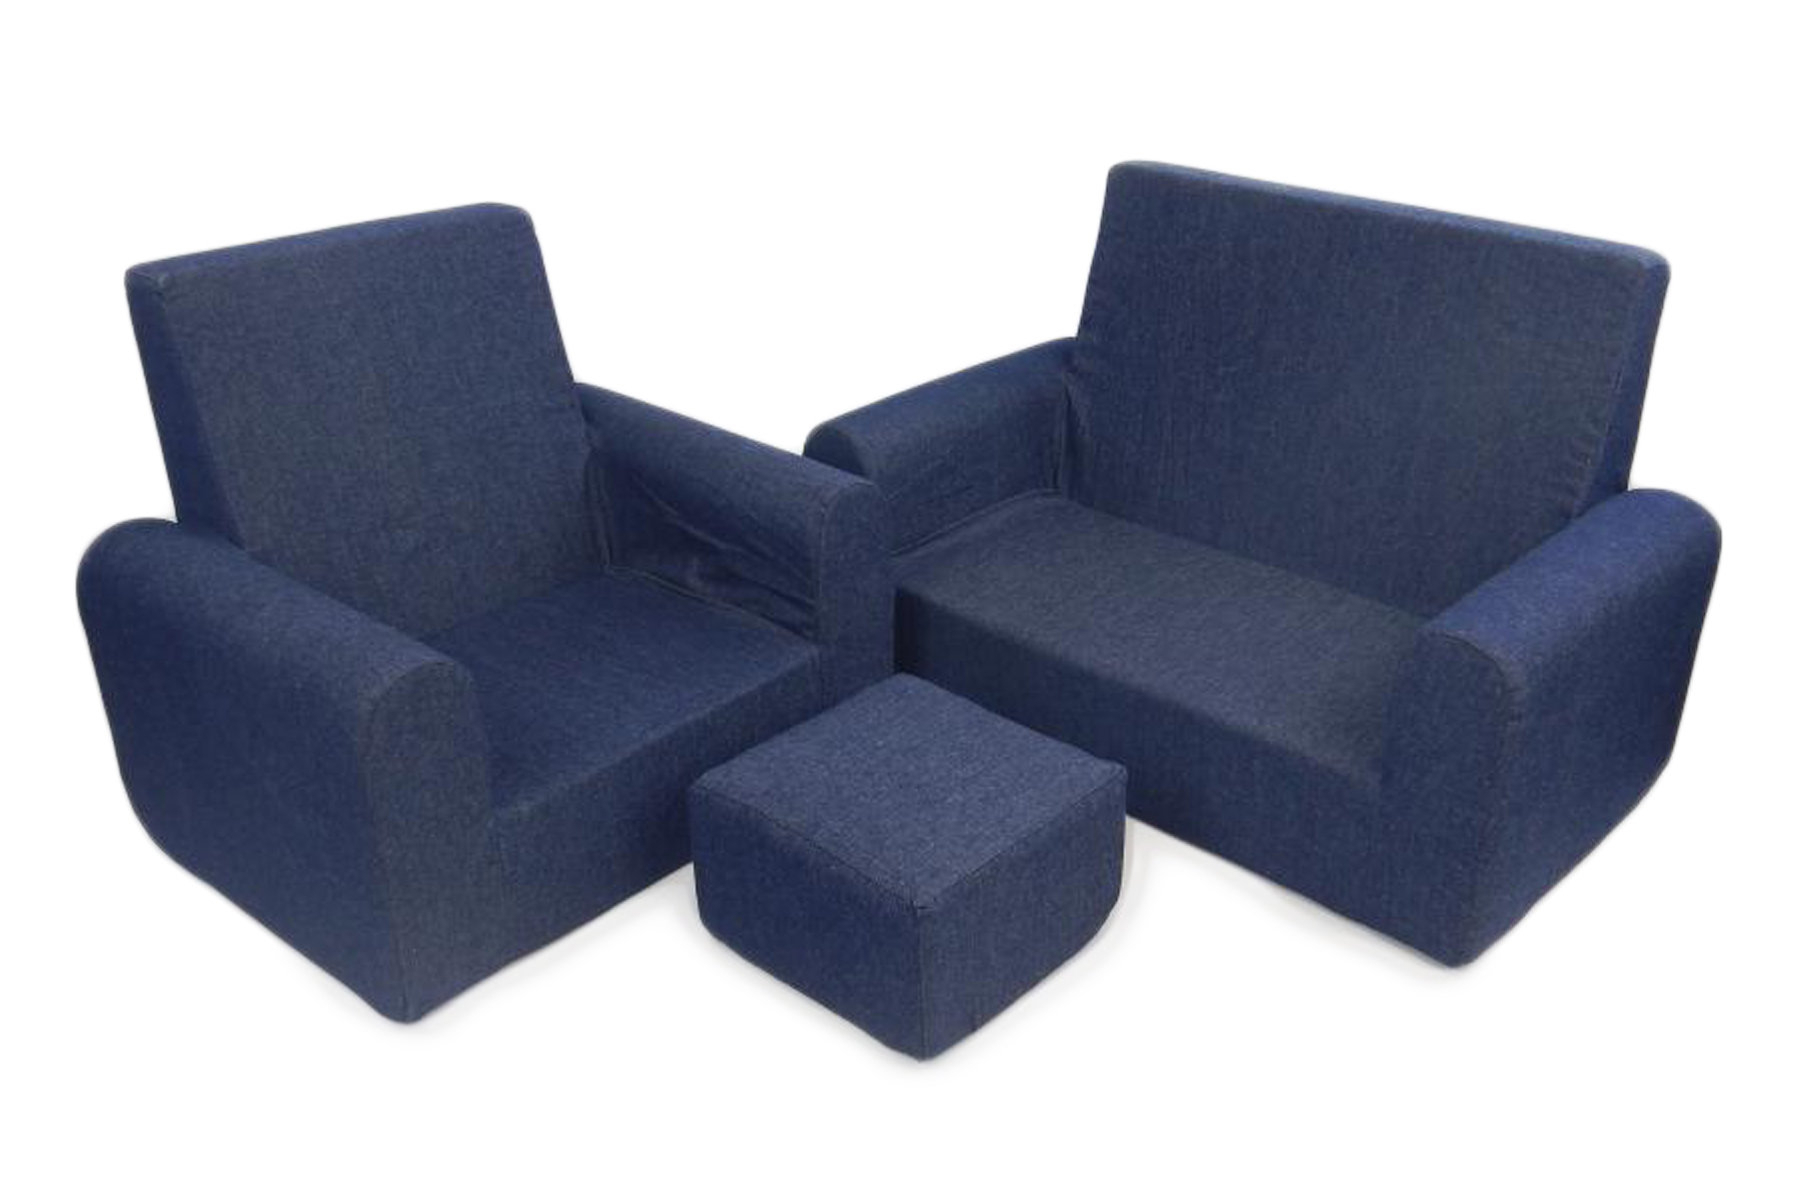 Fun Furnishings 3 Piece Kids Sofa Chair And Ottoman Set & Reviews Pertaining To Famous Sofa Chair And Ottoman (View 20 of 20)